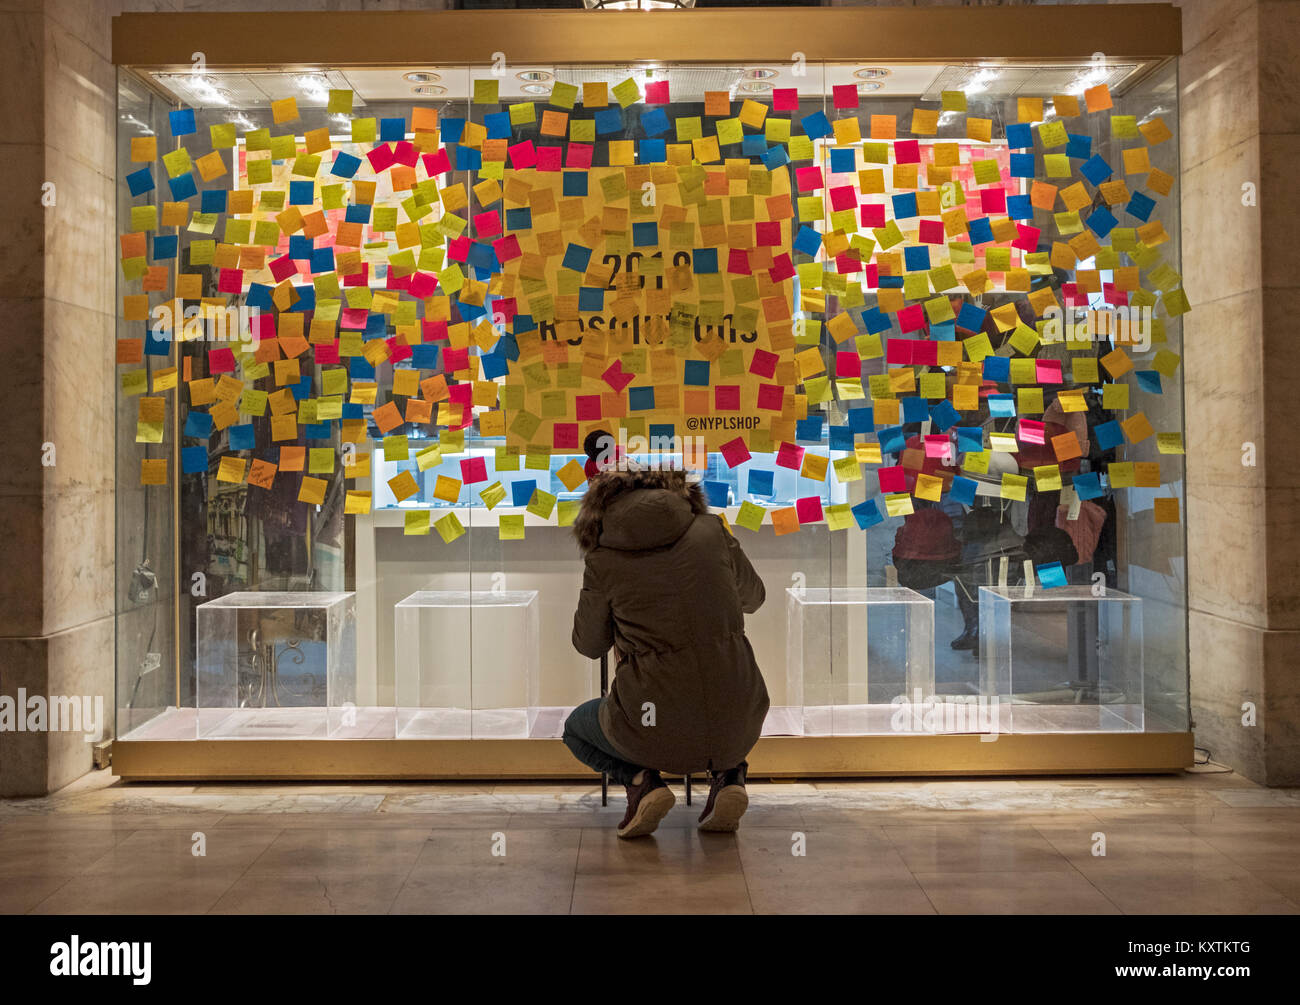 A woman writing her New Years '18 resolution on a stickie note & posting it on the window of the gift shop - Stock Image